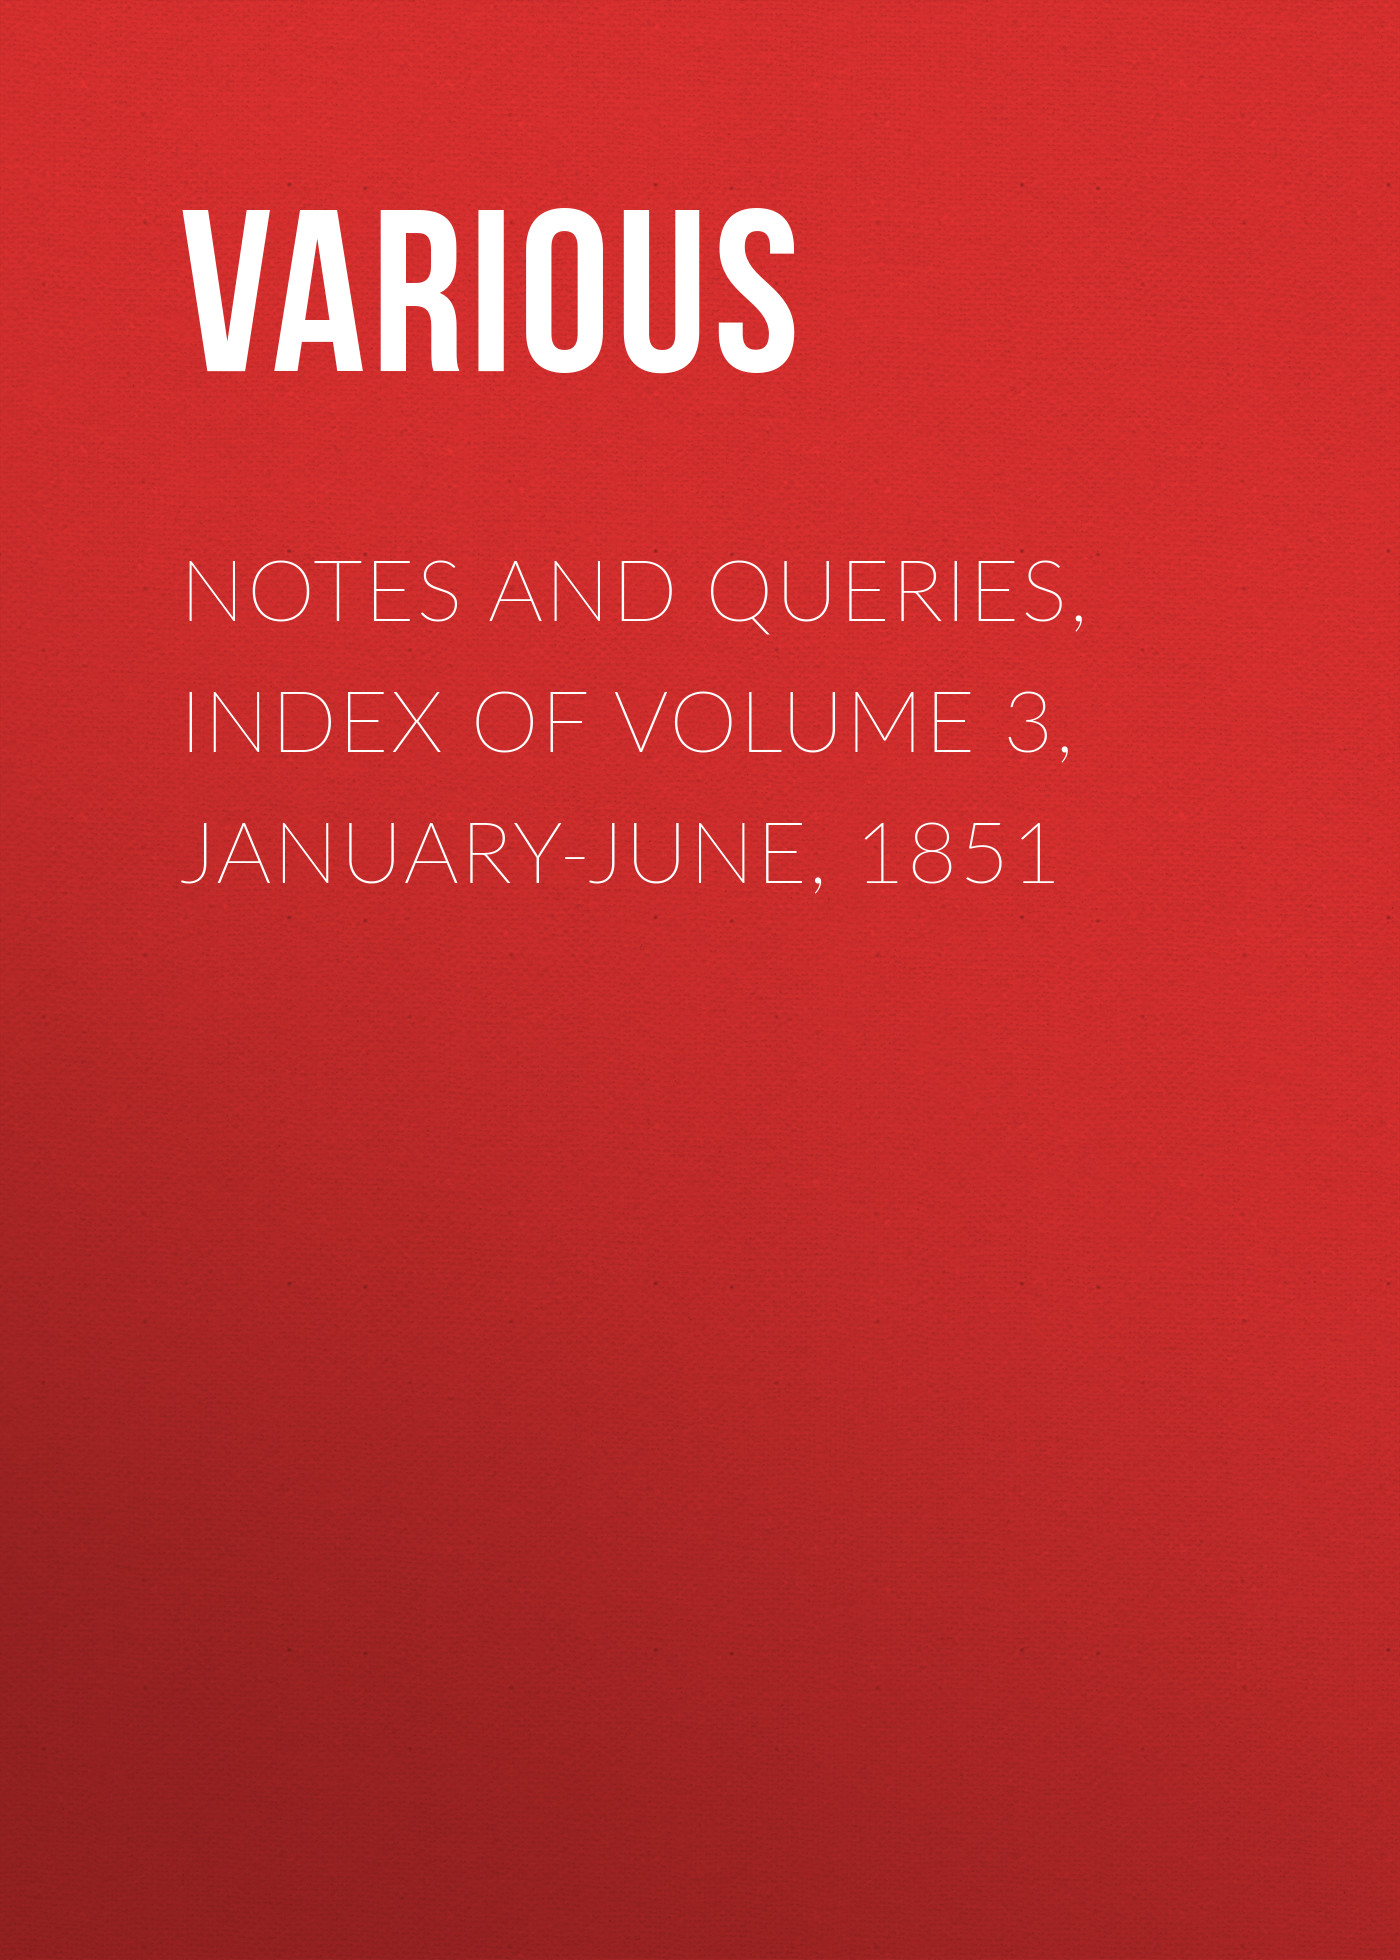 Notes and Queries, Index of Volume 3, January-June, 1851 ( Various  )